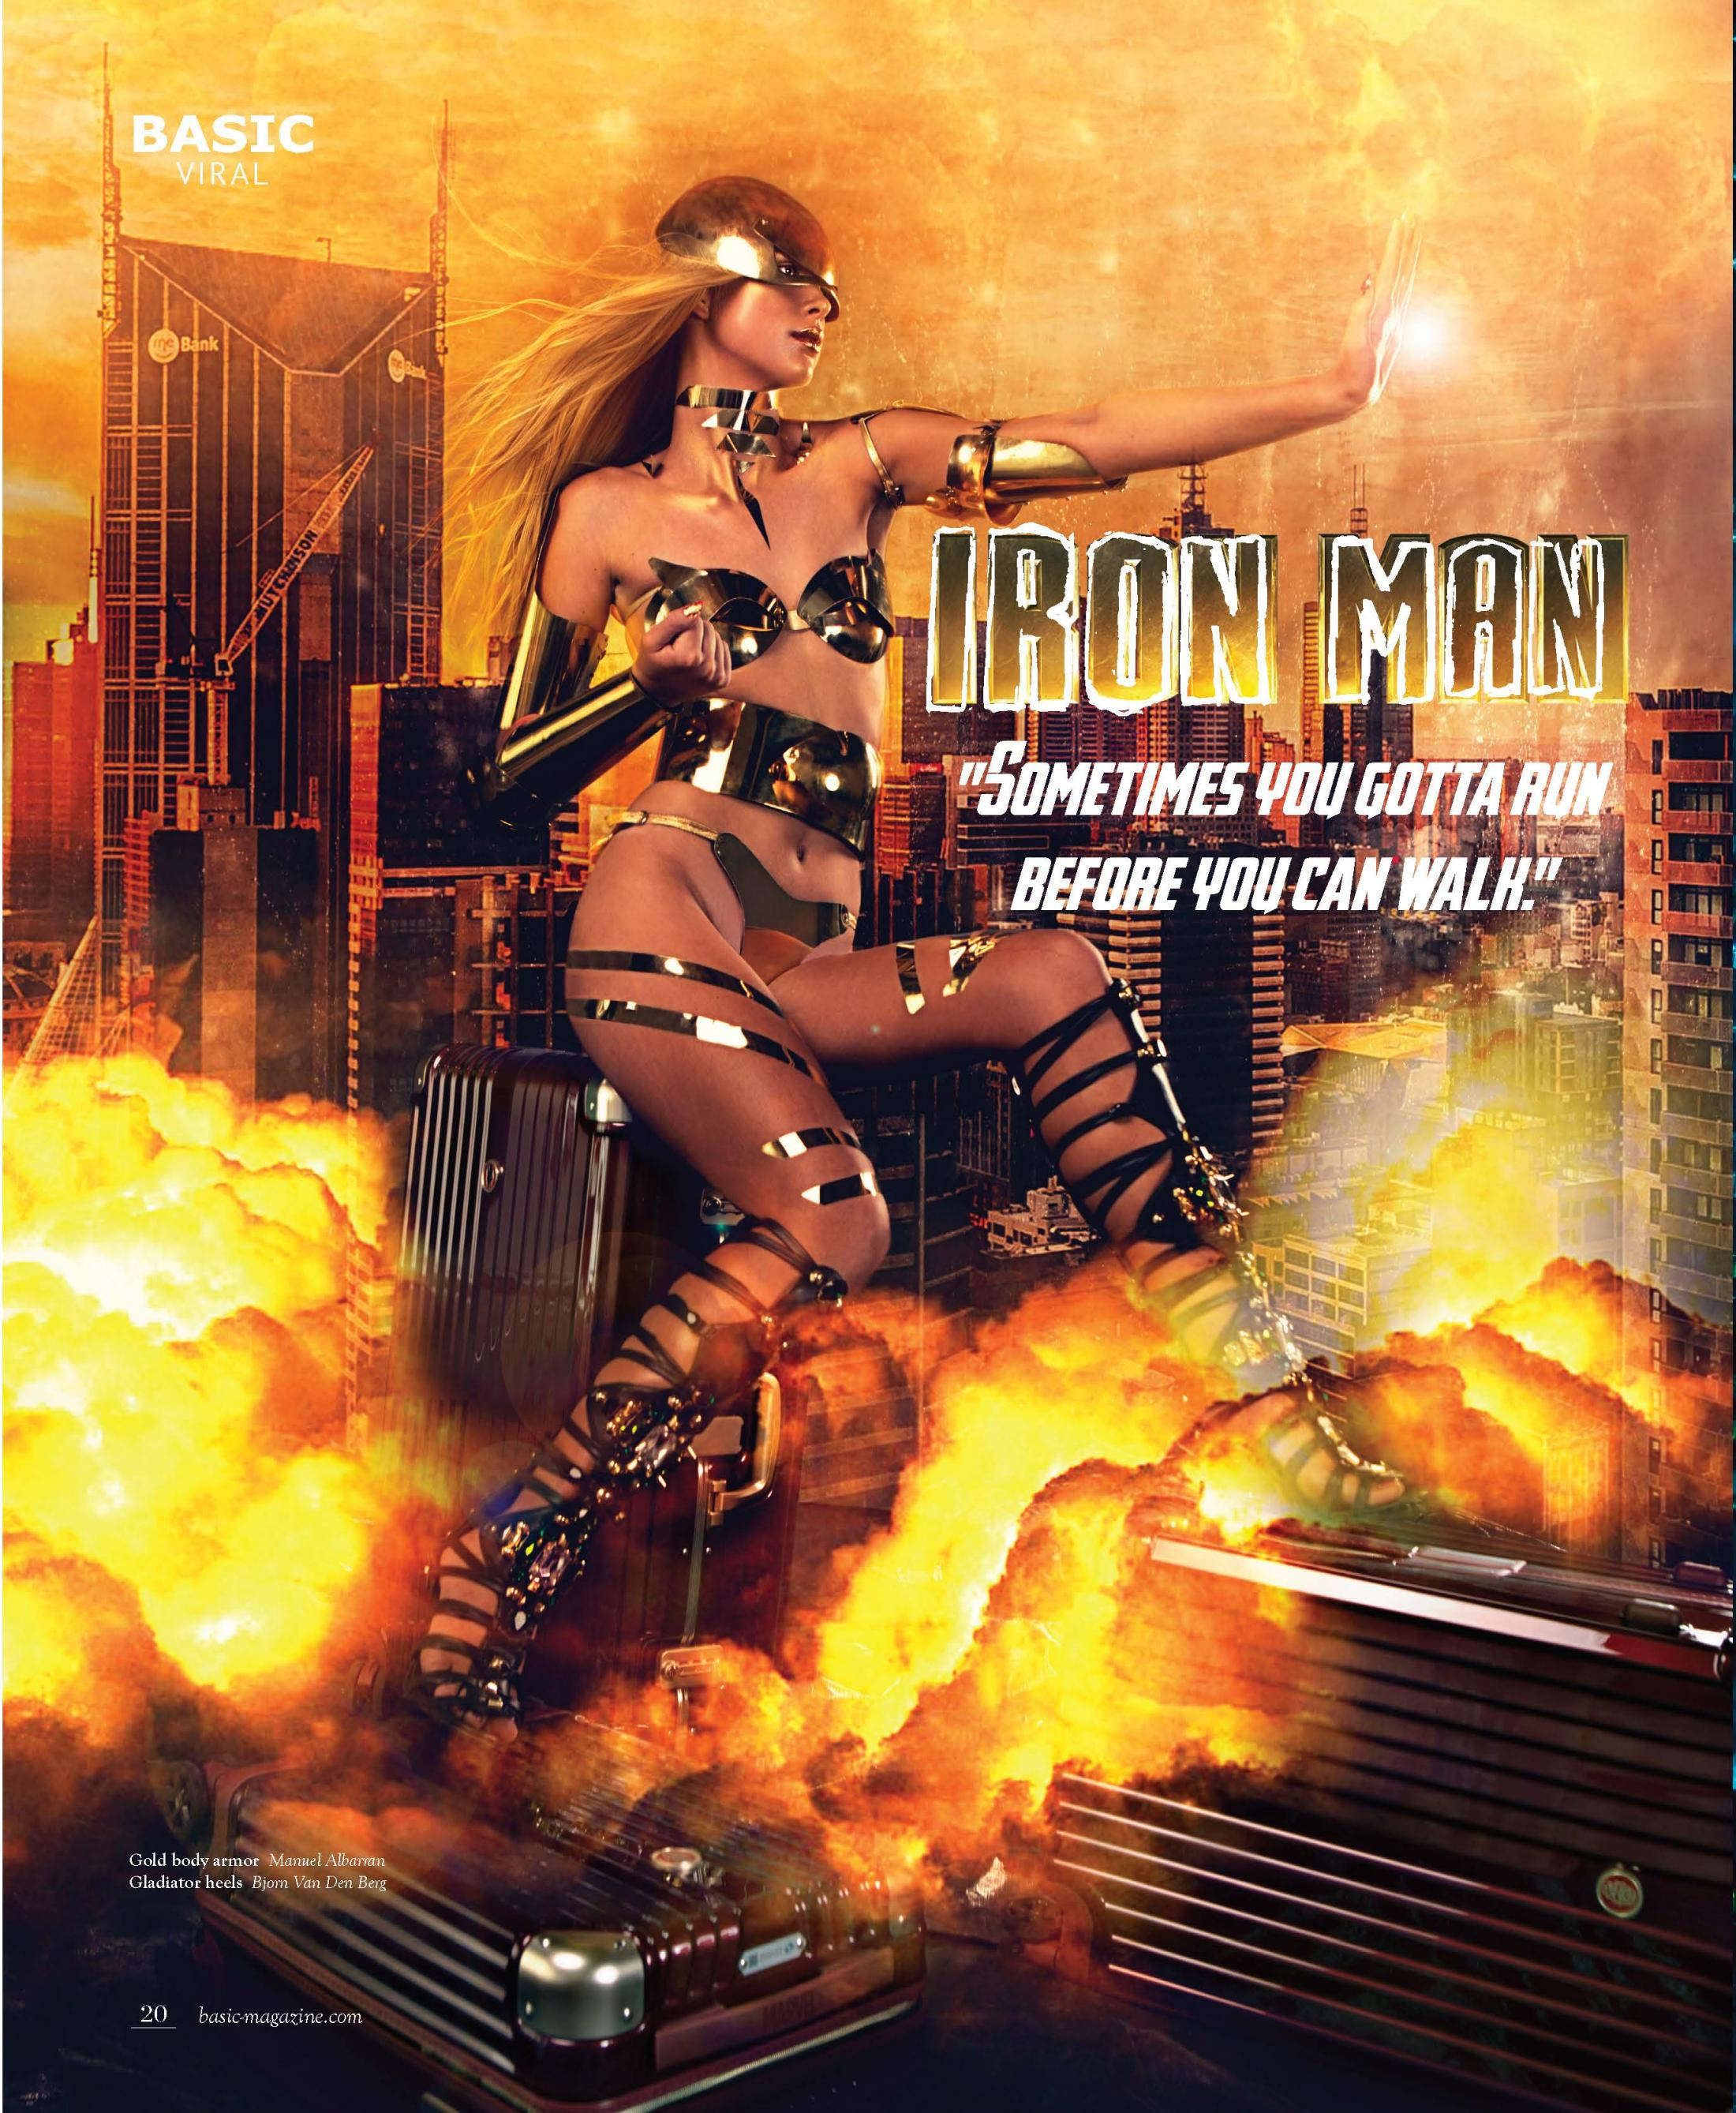 Deseno Print Ad - Women Superheroes - Iron Man